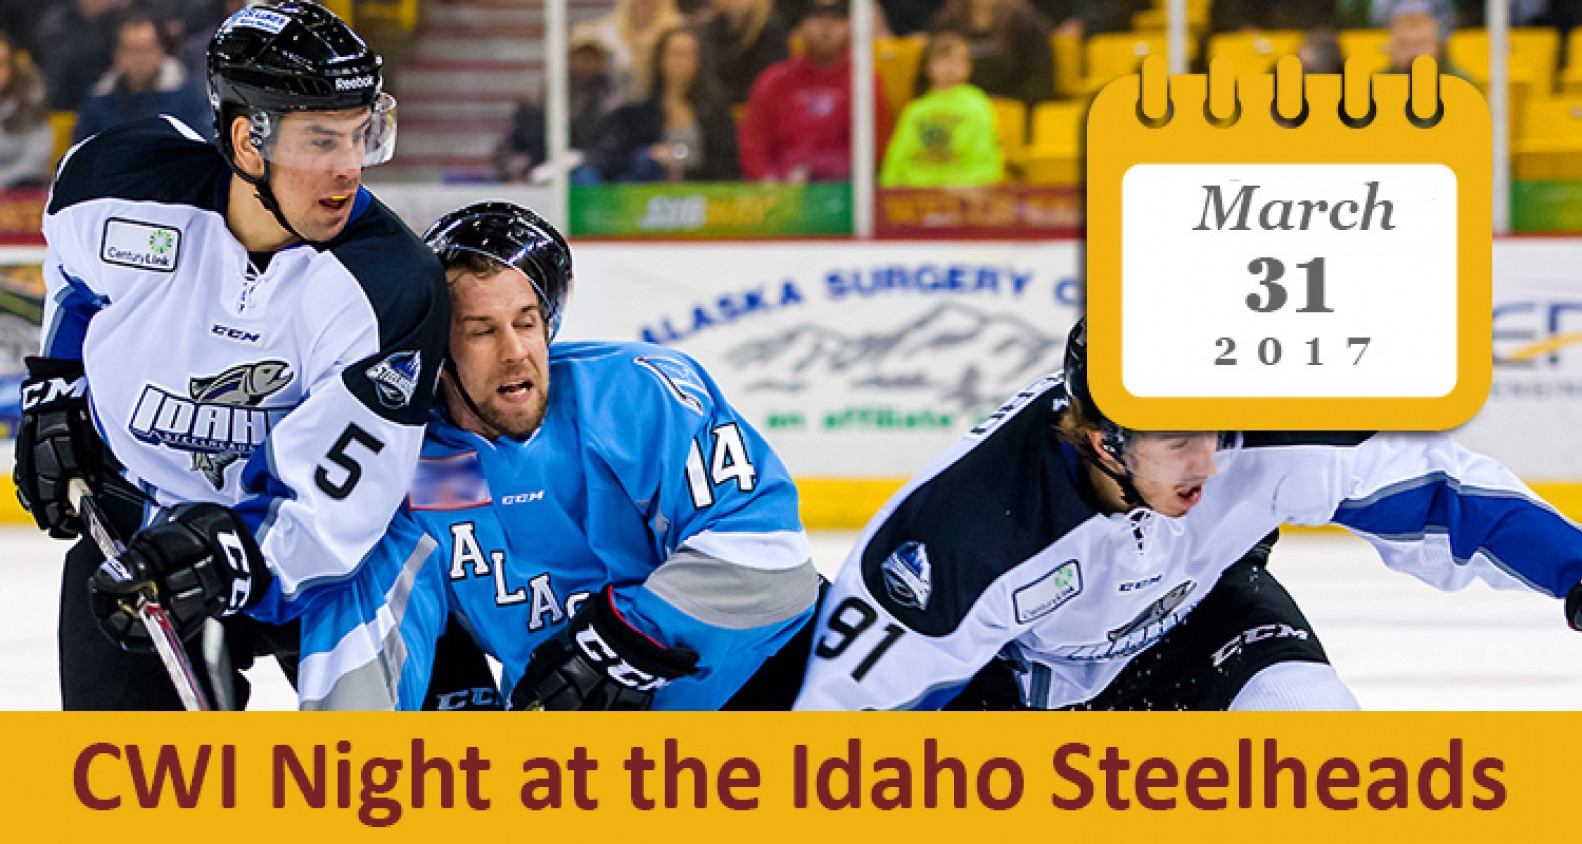 CWI Night at the Idaho Steelheads | March 31, 2017